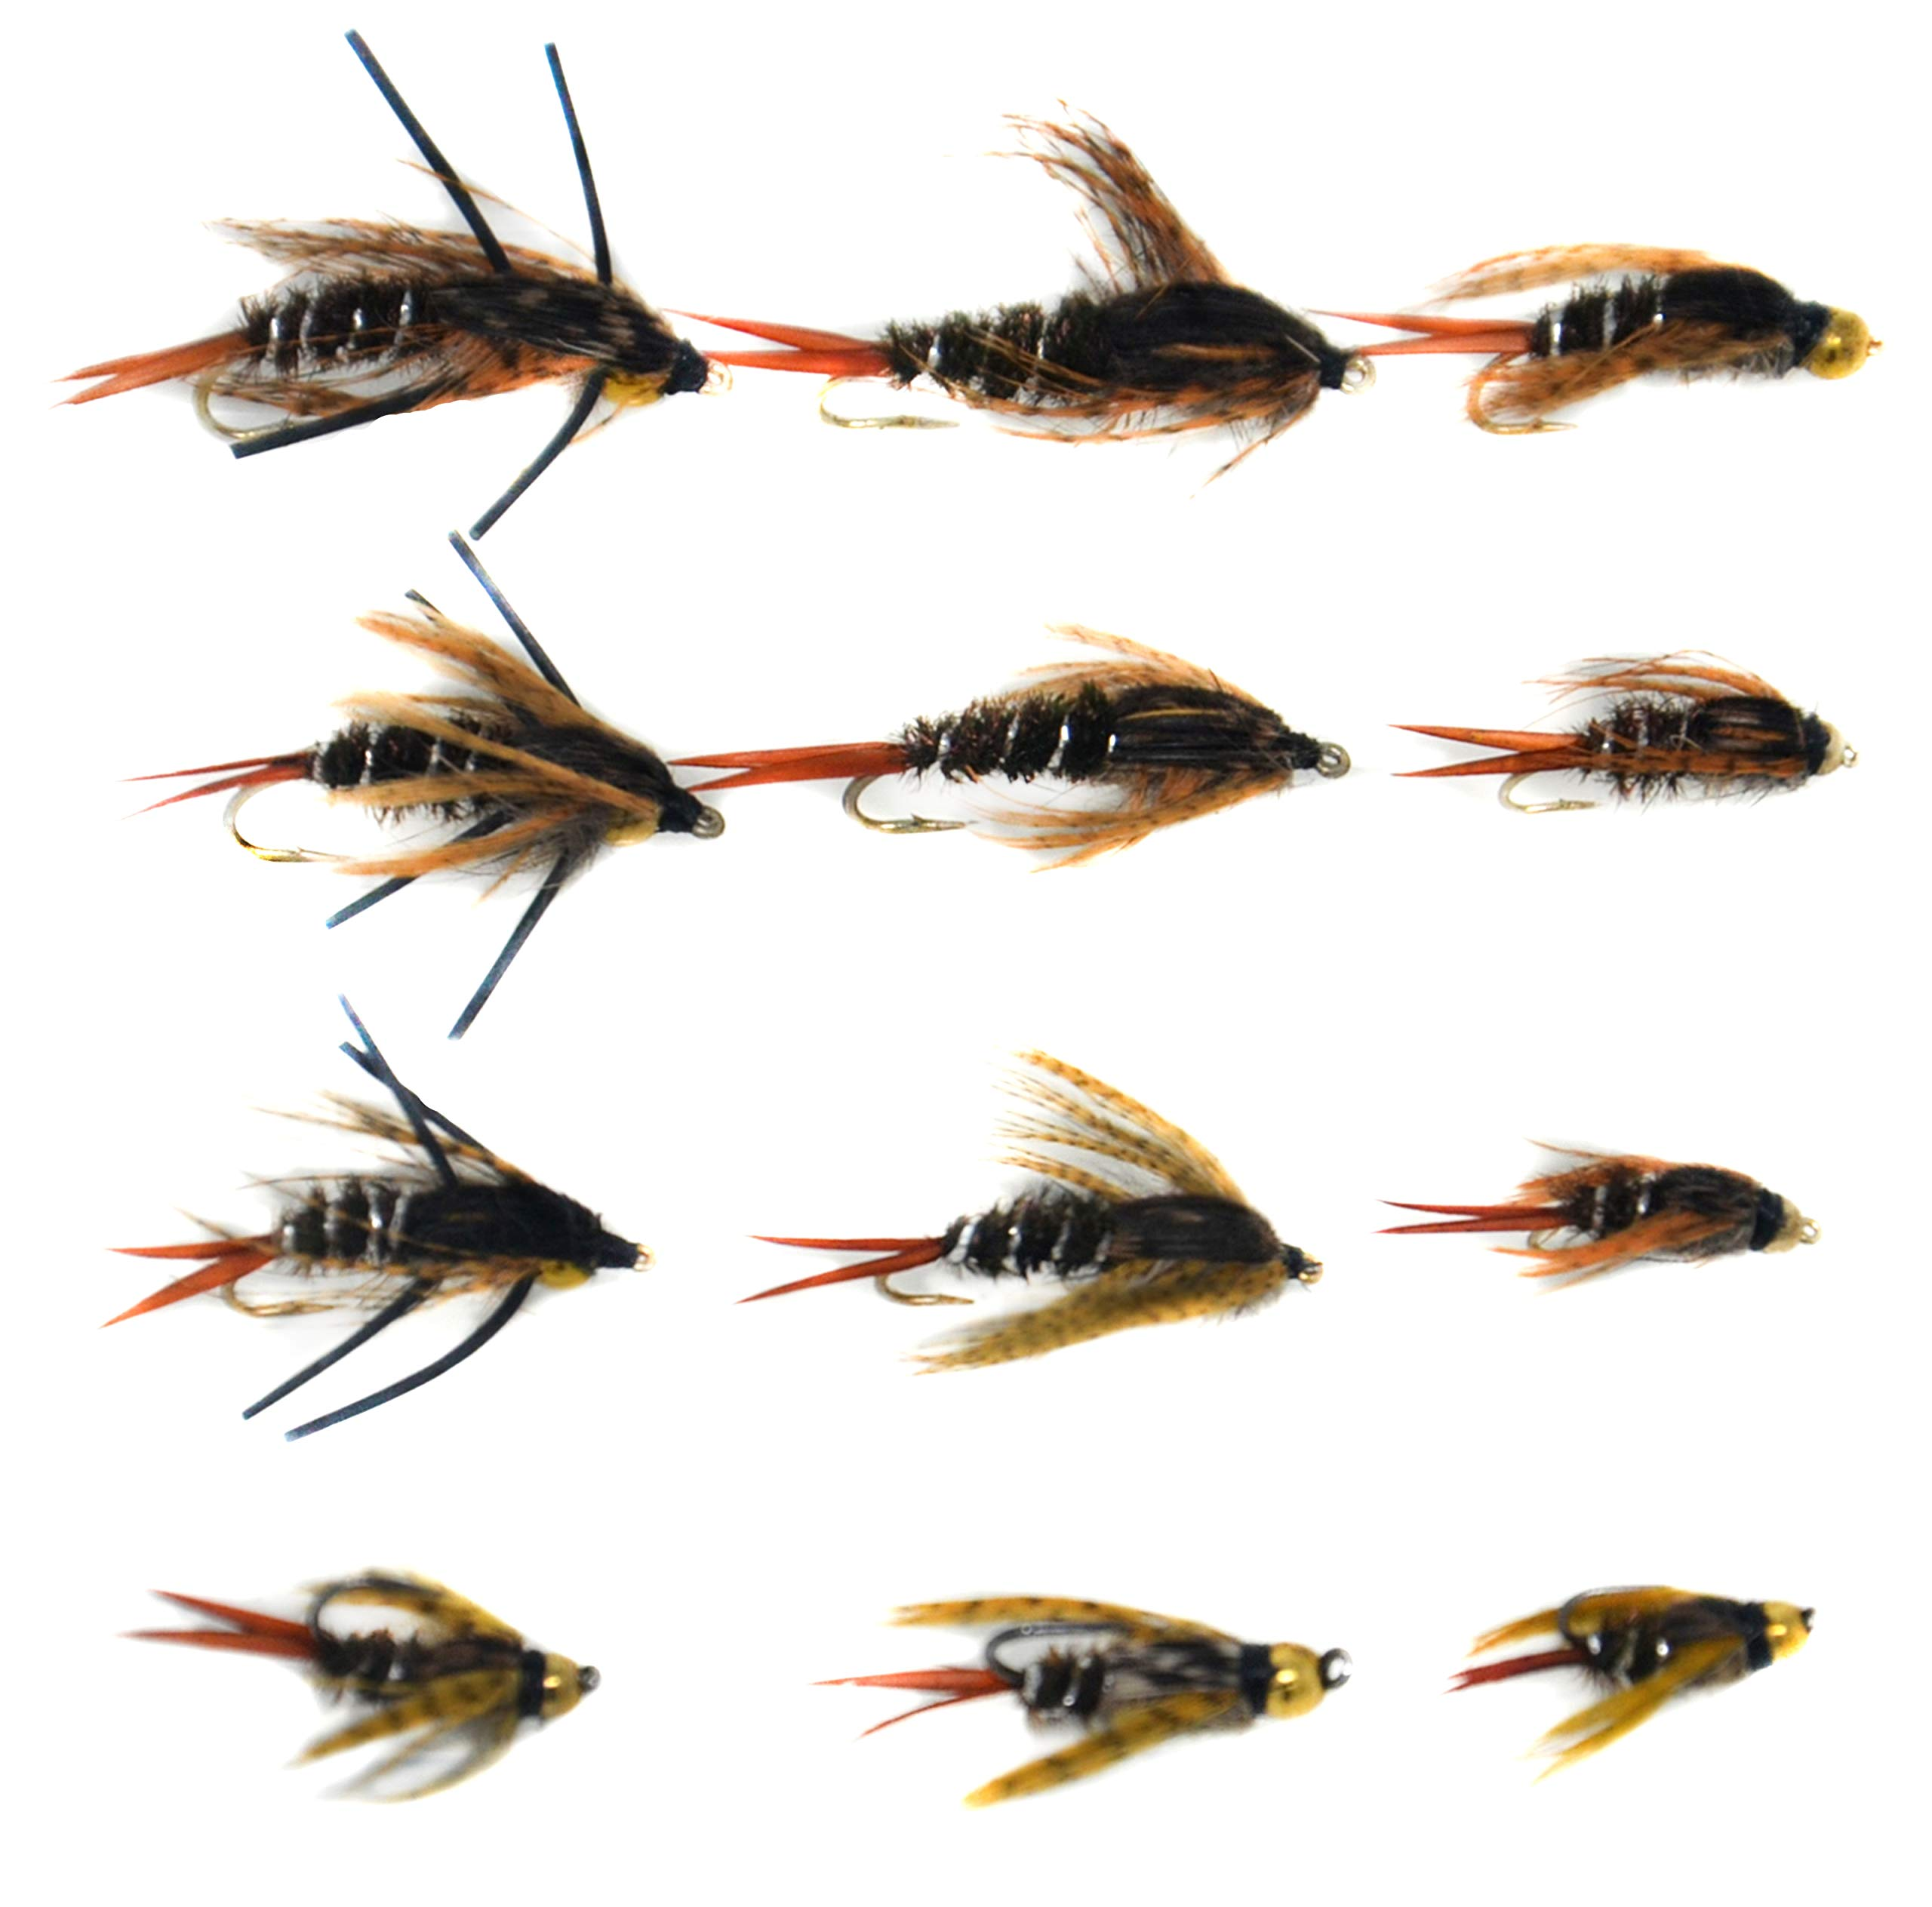 Outdoor Planet 12Pcs 20 Incher Attractor Nymph/Stonefly/Attractor Nymph/Prospecting Nymphs/Mayfly Nymph/Wet Flies for Trout Fly Fishing Flies Lure Assortment by Outdoor Planet